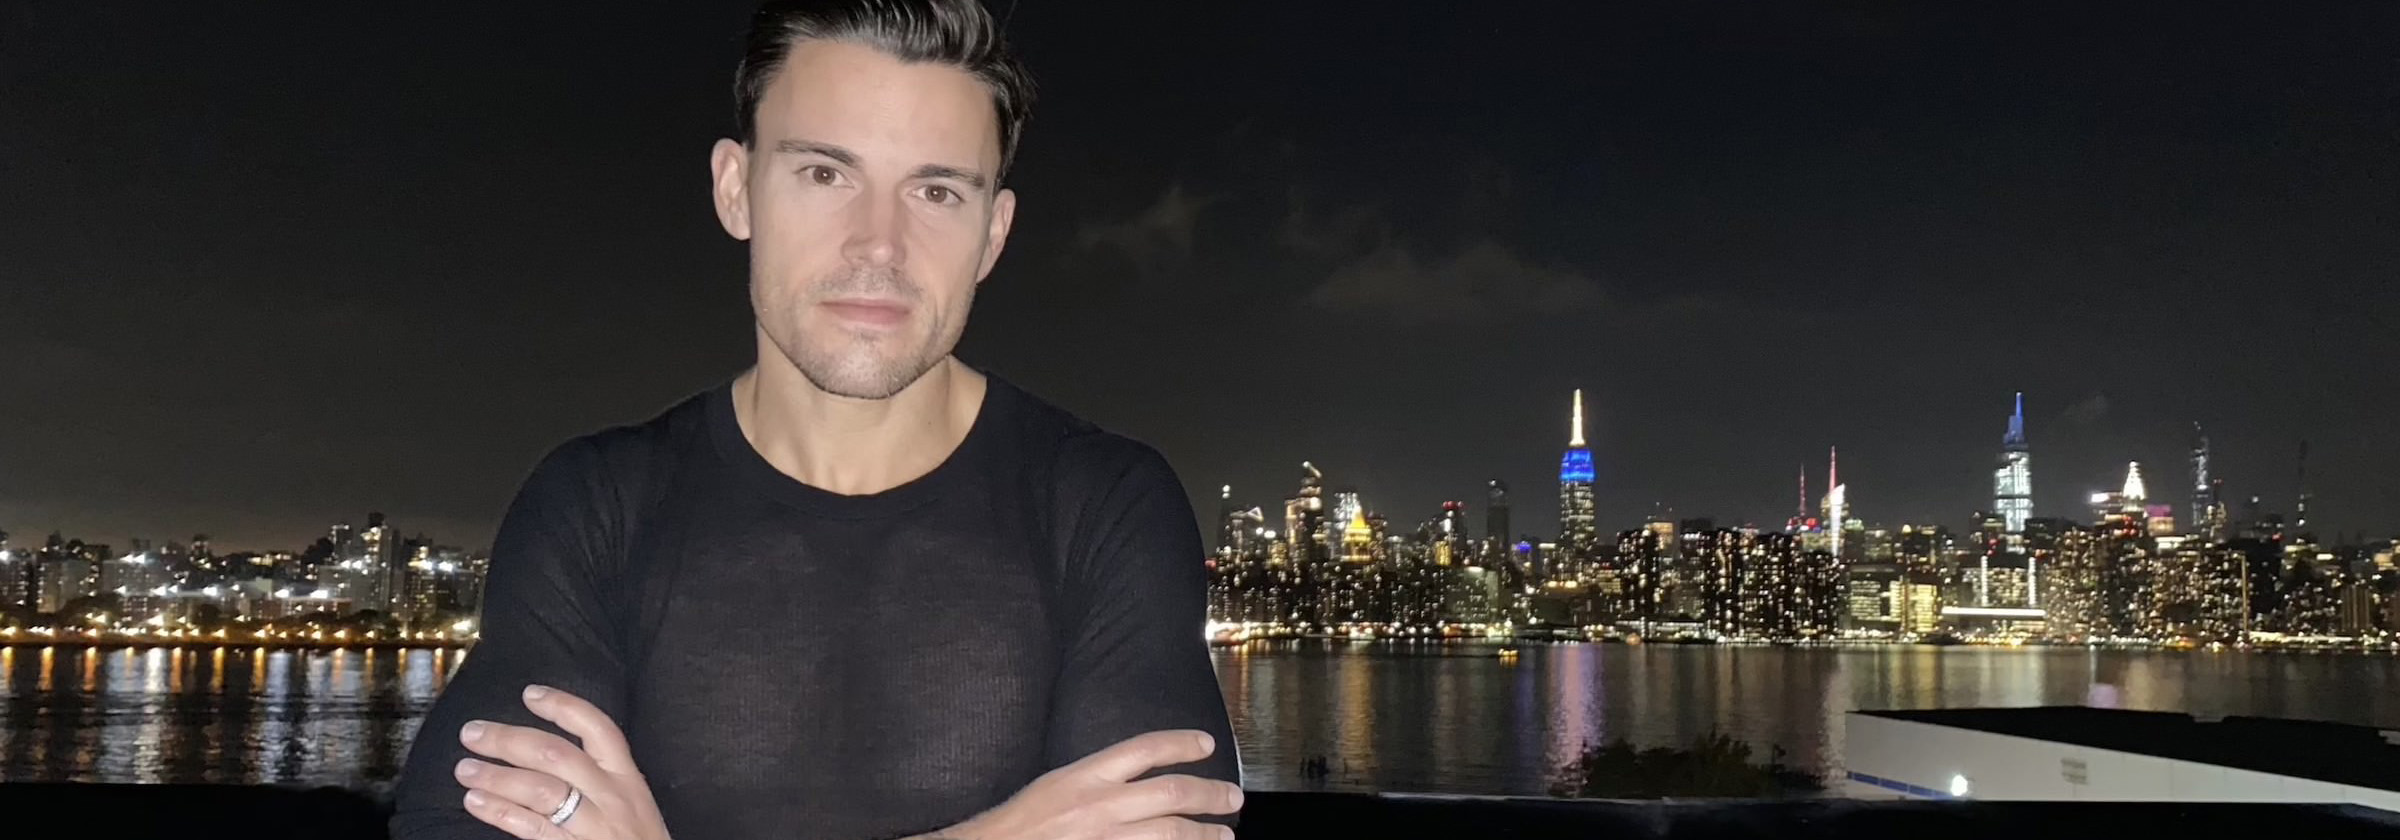 Man in front of New York skyline